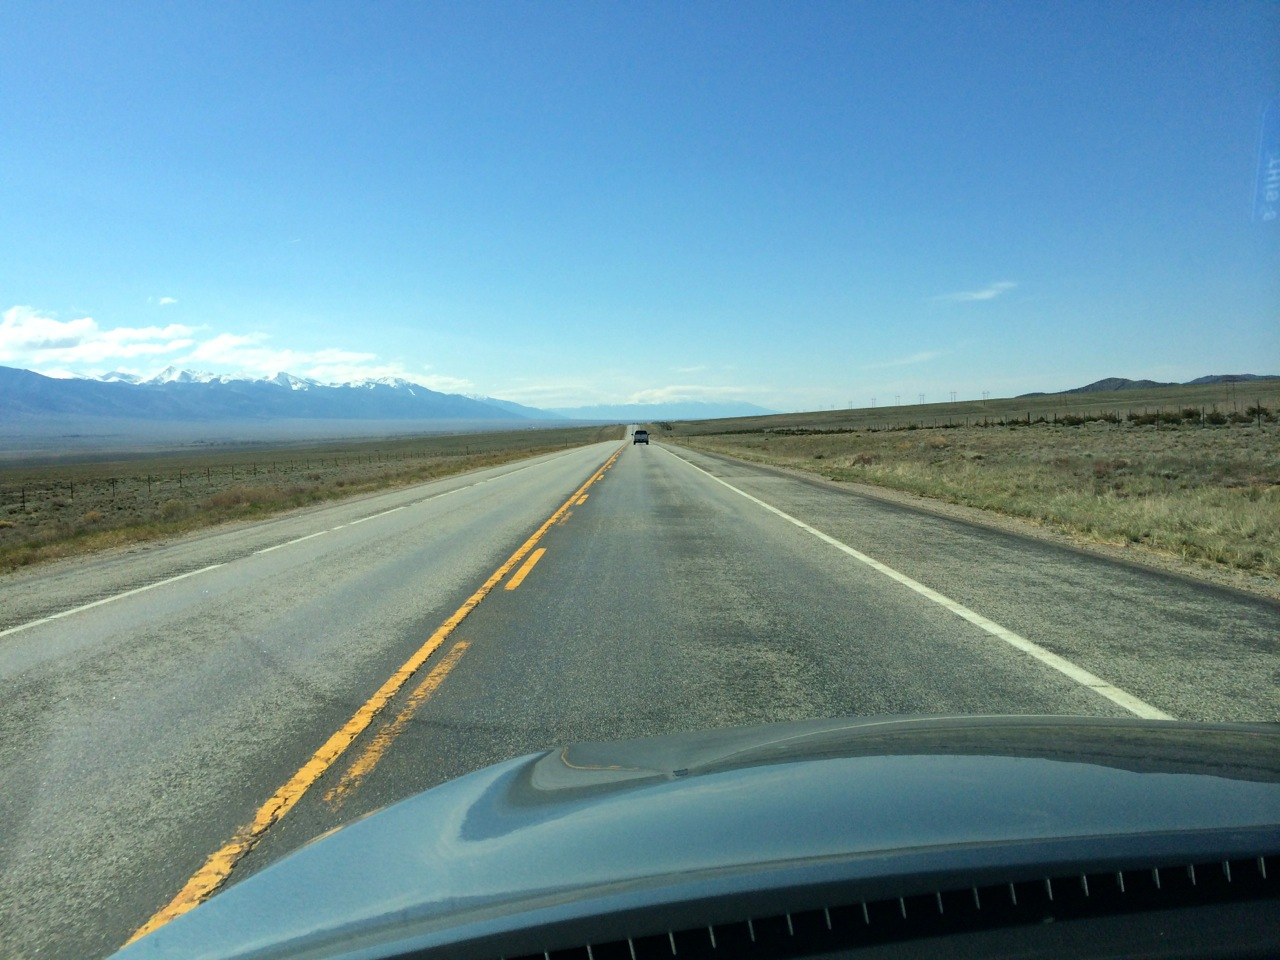 The wide-open San Luis Valley with the Sangre de Cristo Range on the left, on the road to Durango.